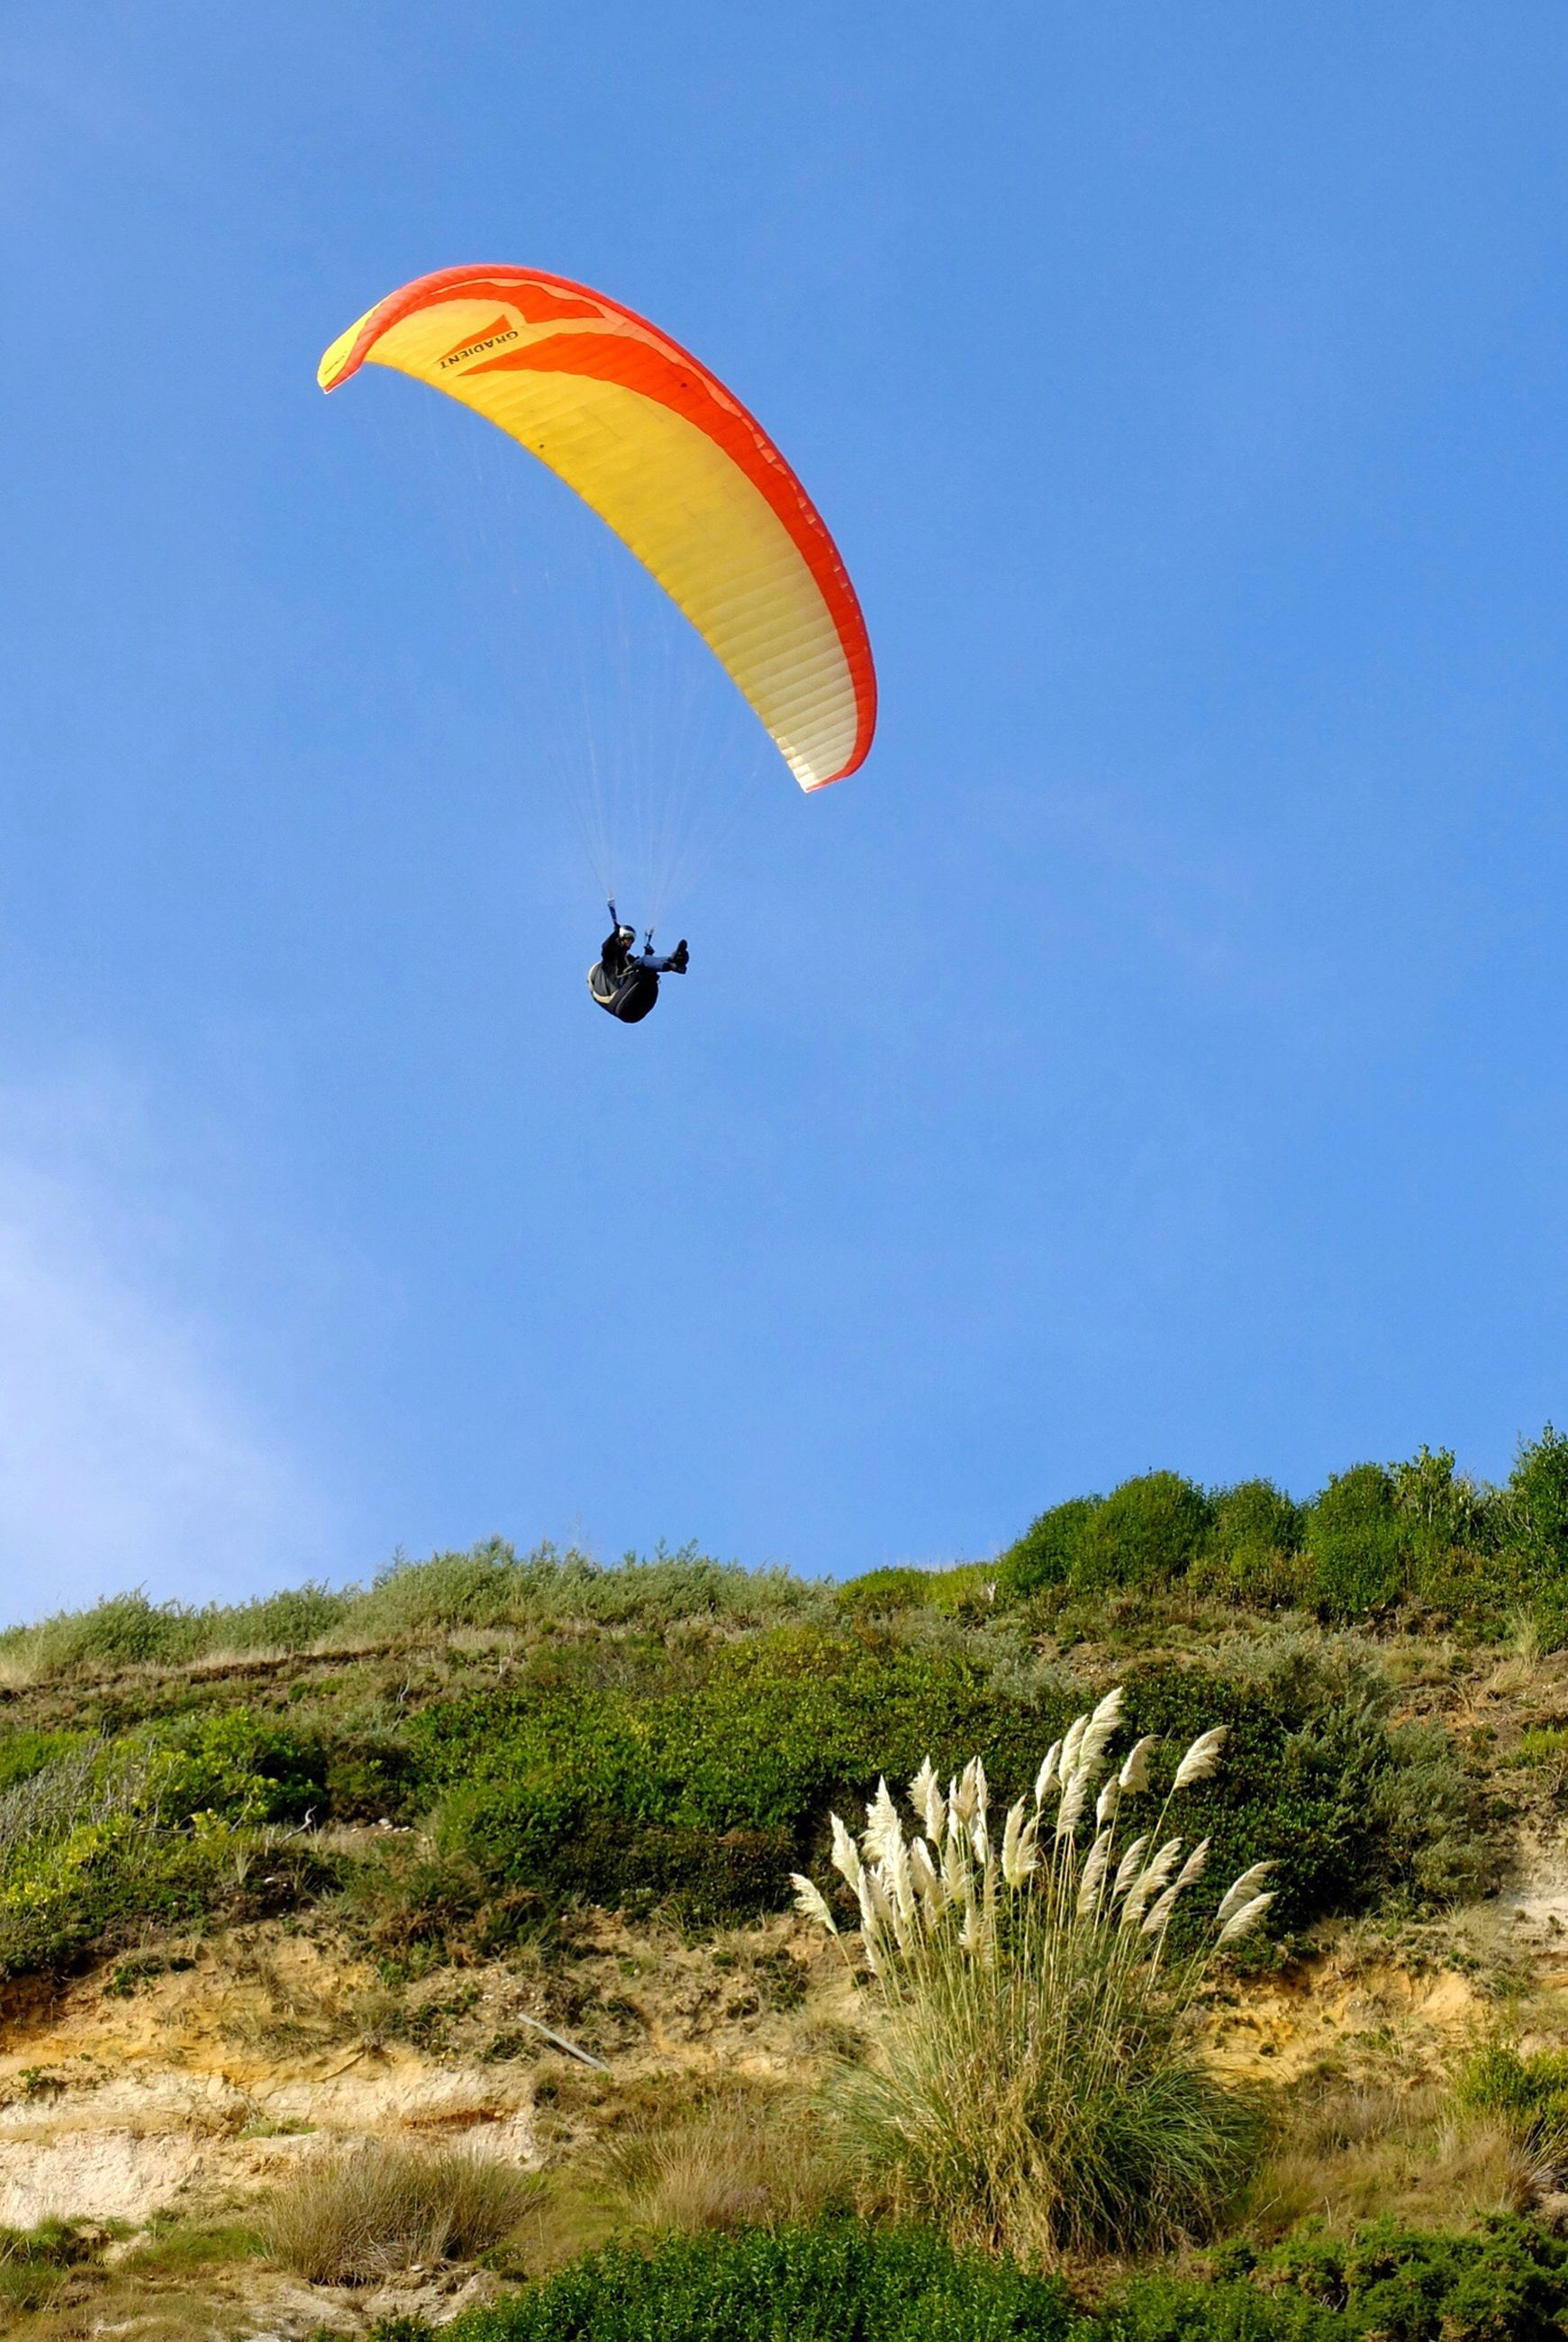 flying, mid-air, parachute, extreme sports, clear sky, transportation, adventure, paragliding, blue, leisure activity, low angle view, exhilaration, copy space, air vehicle, freedom, sport, mode of transport, travel